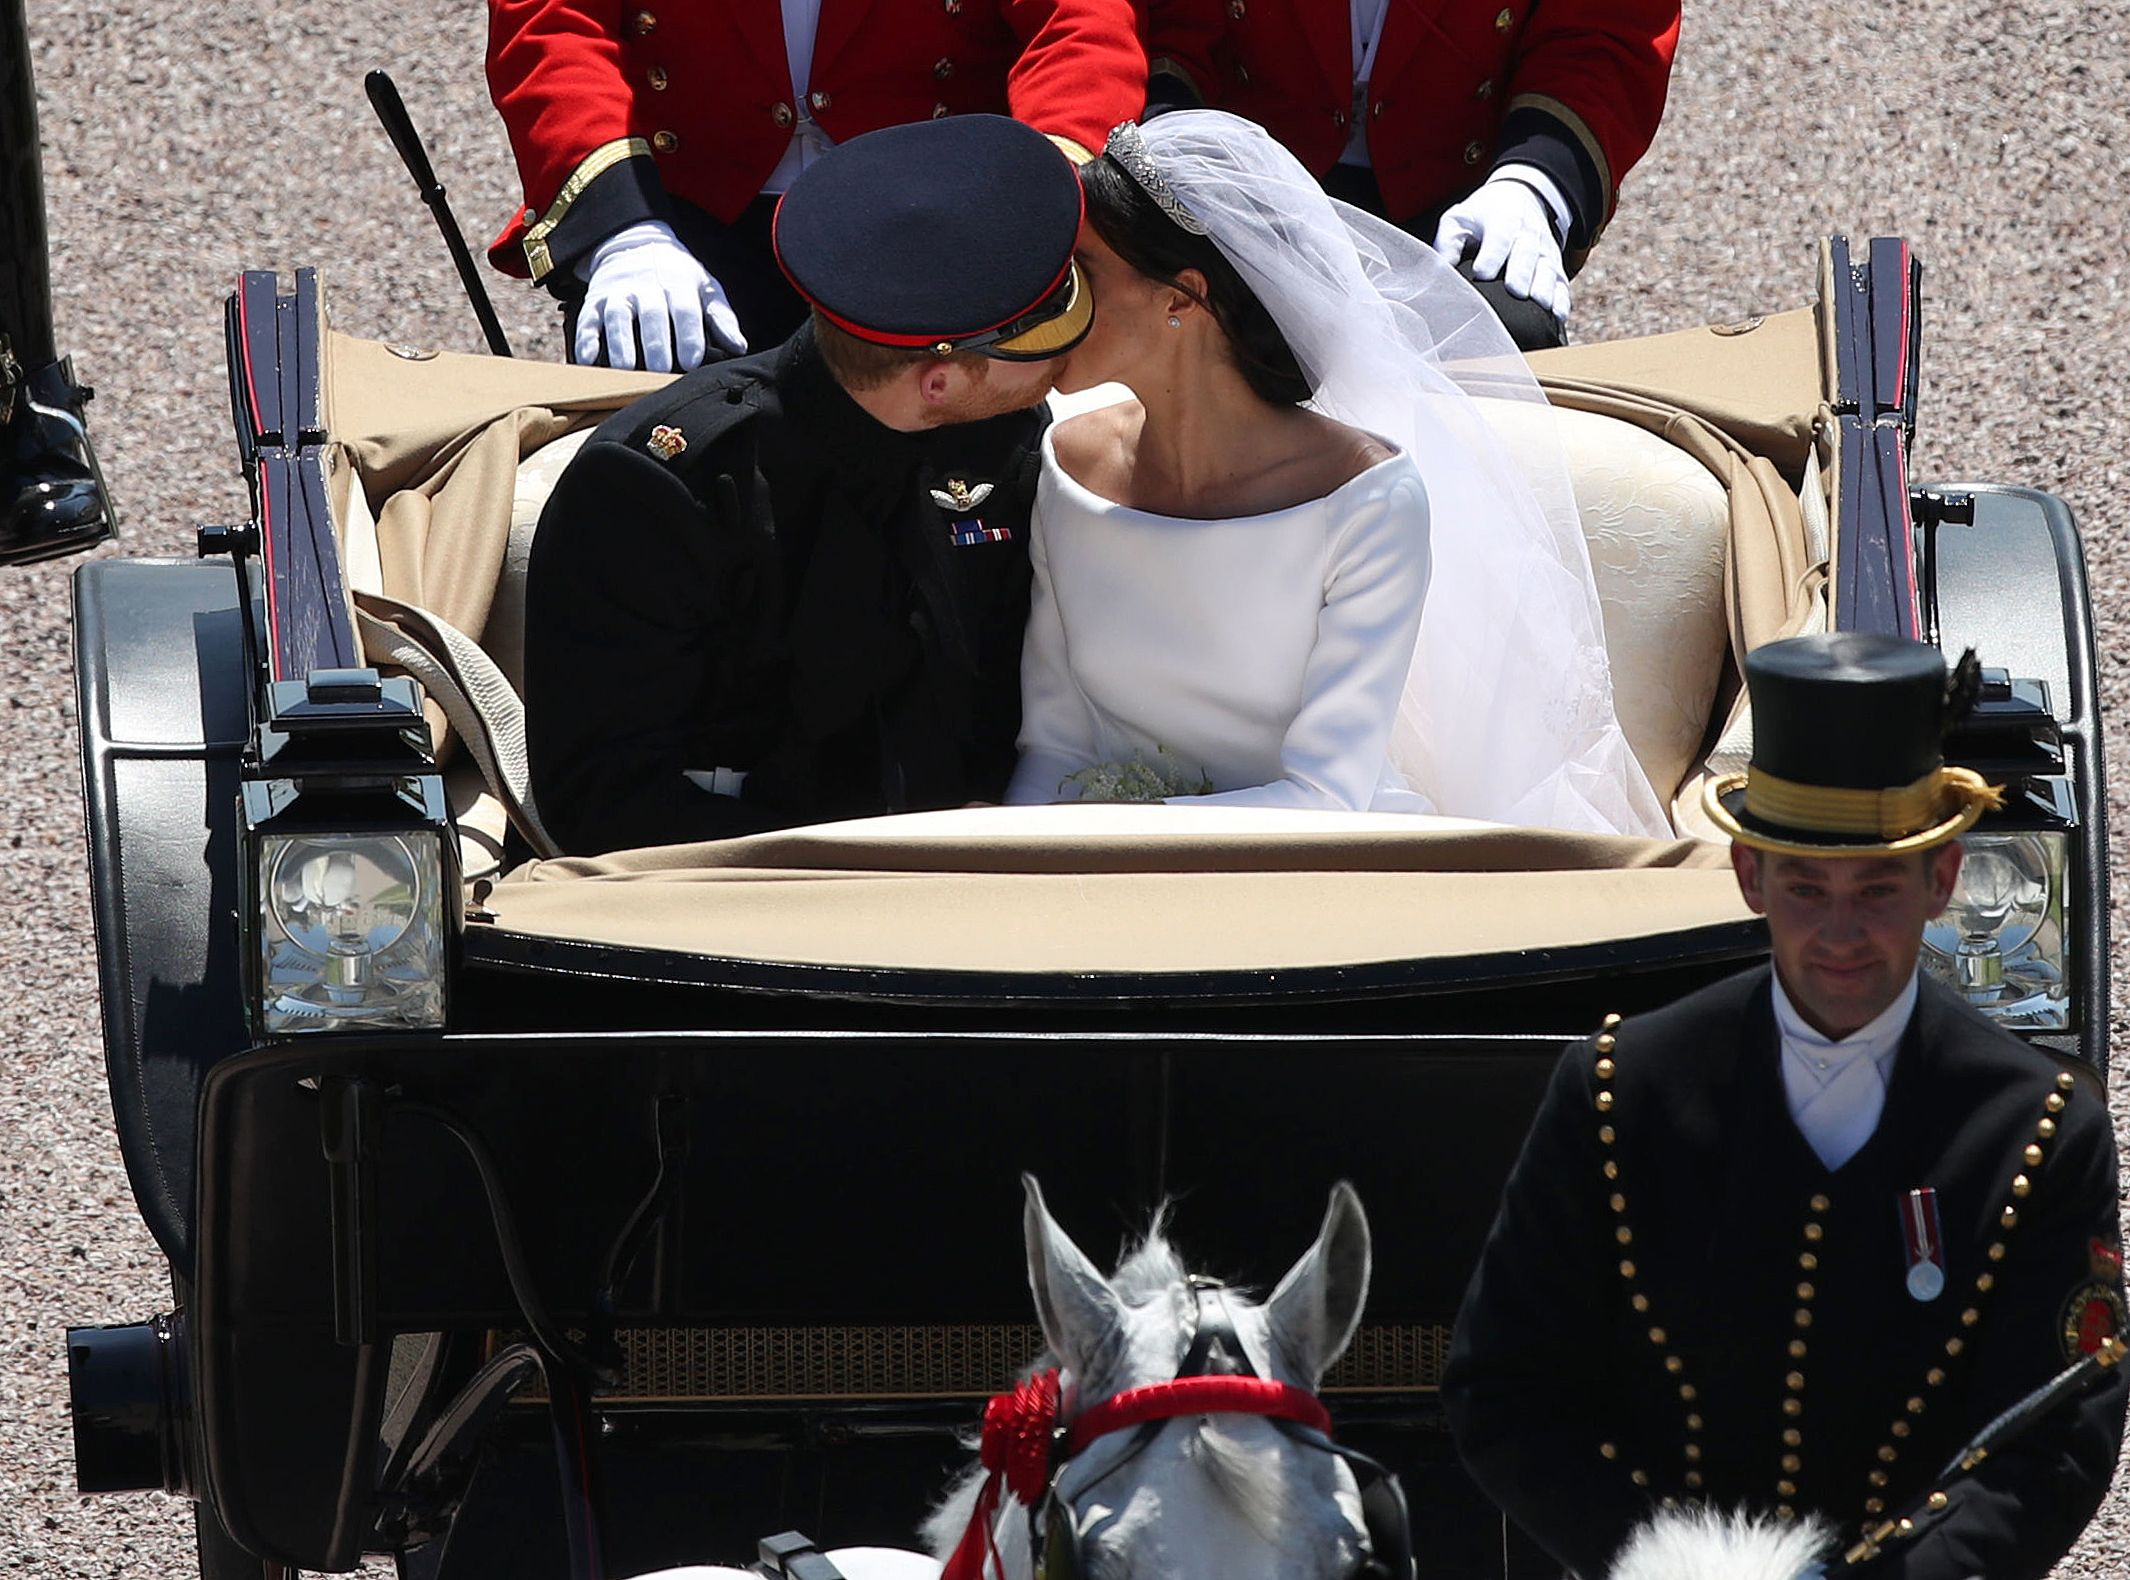 prince harry has second kiss with meghan markle during royal wedding carriage procession harry meghan wedding kiss harry meghan wedding kiss